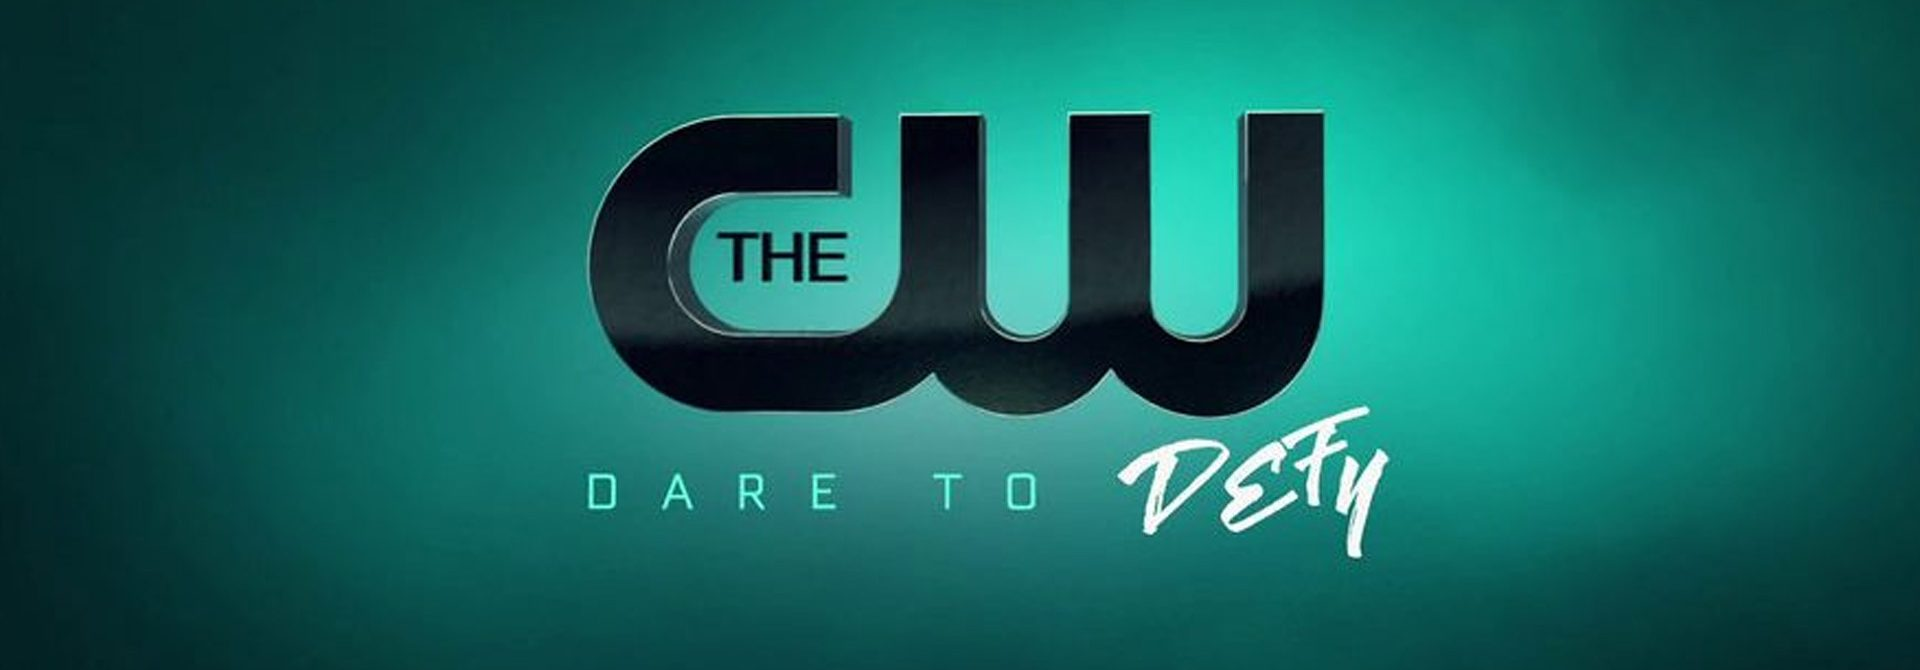 Guess What The CW Just Did? Yup, They Renewed Everything